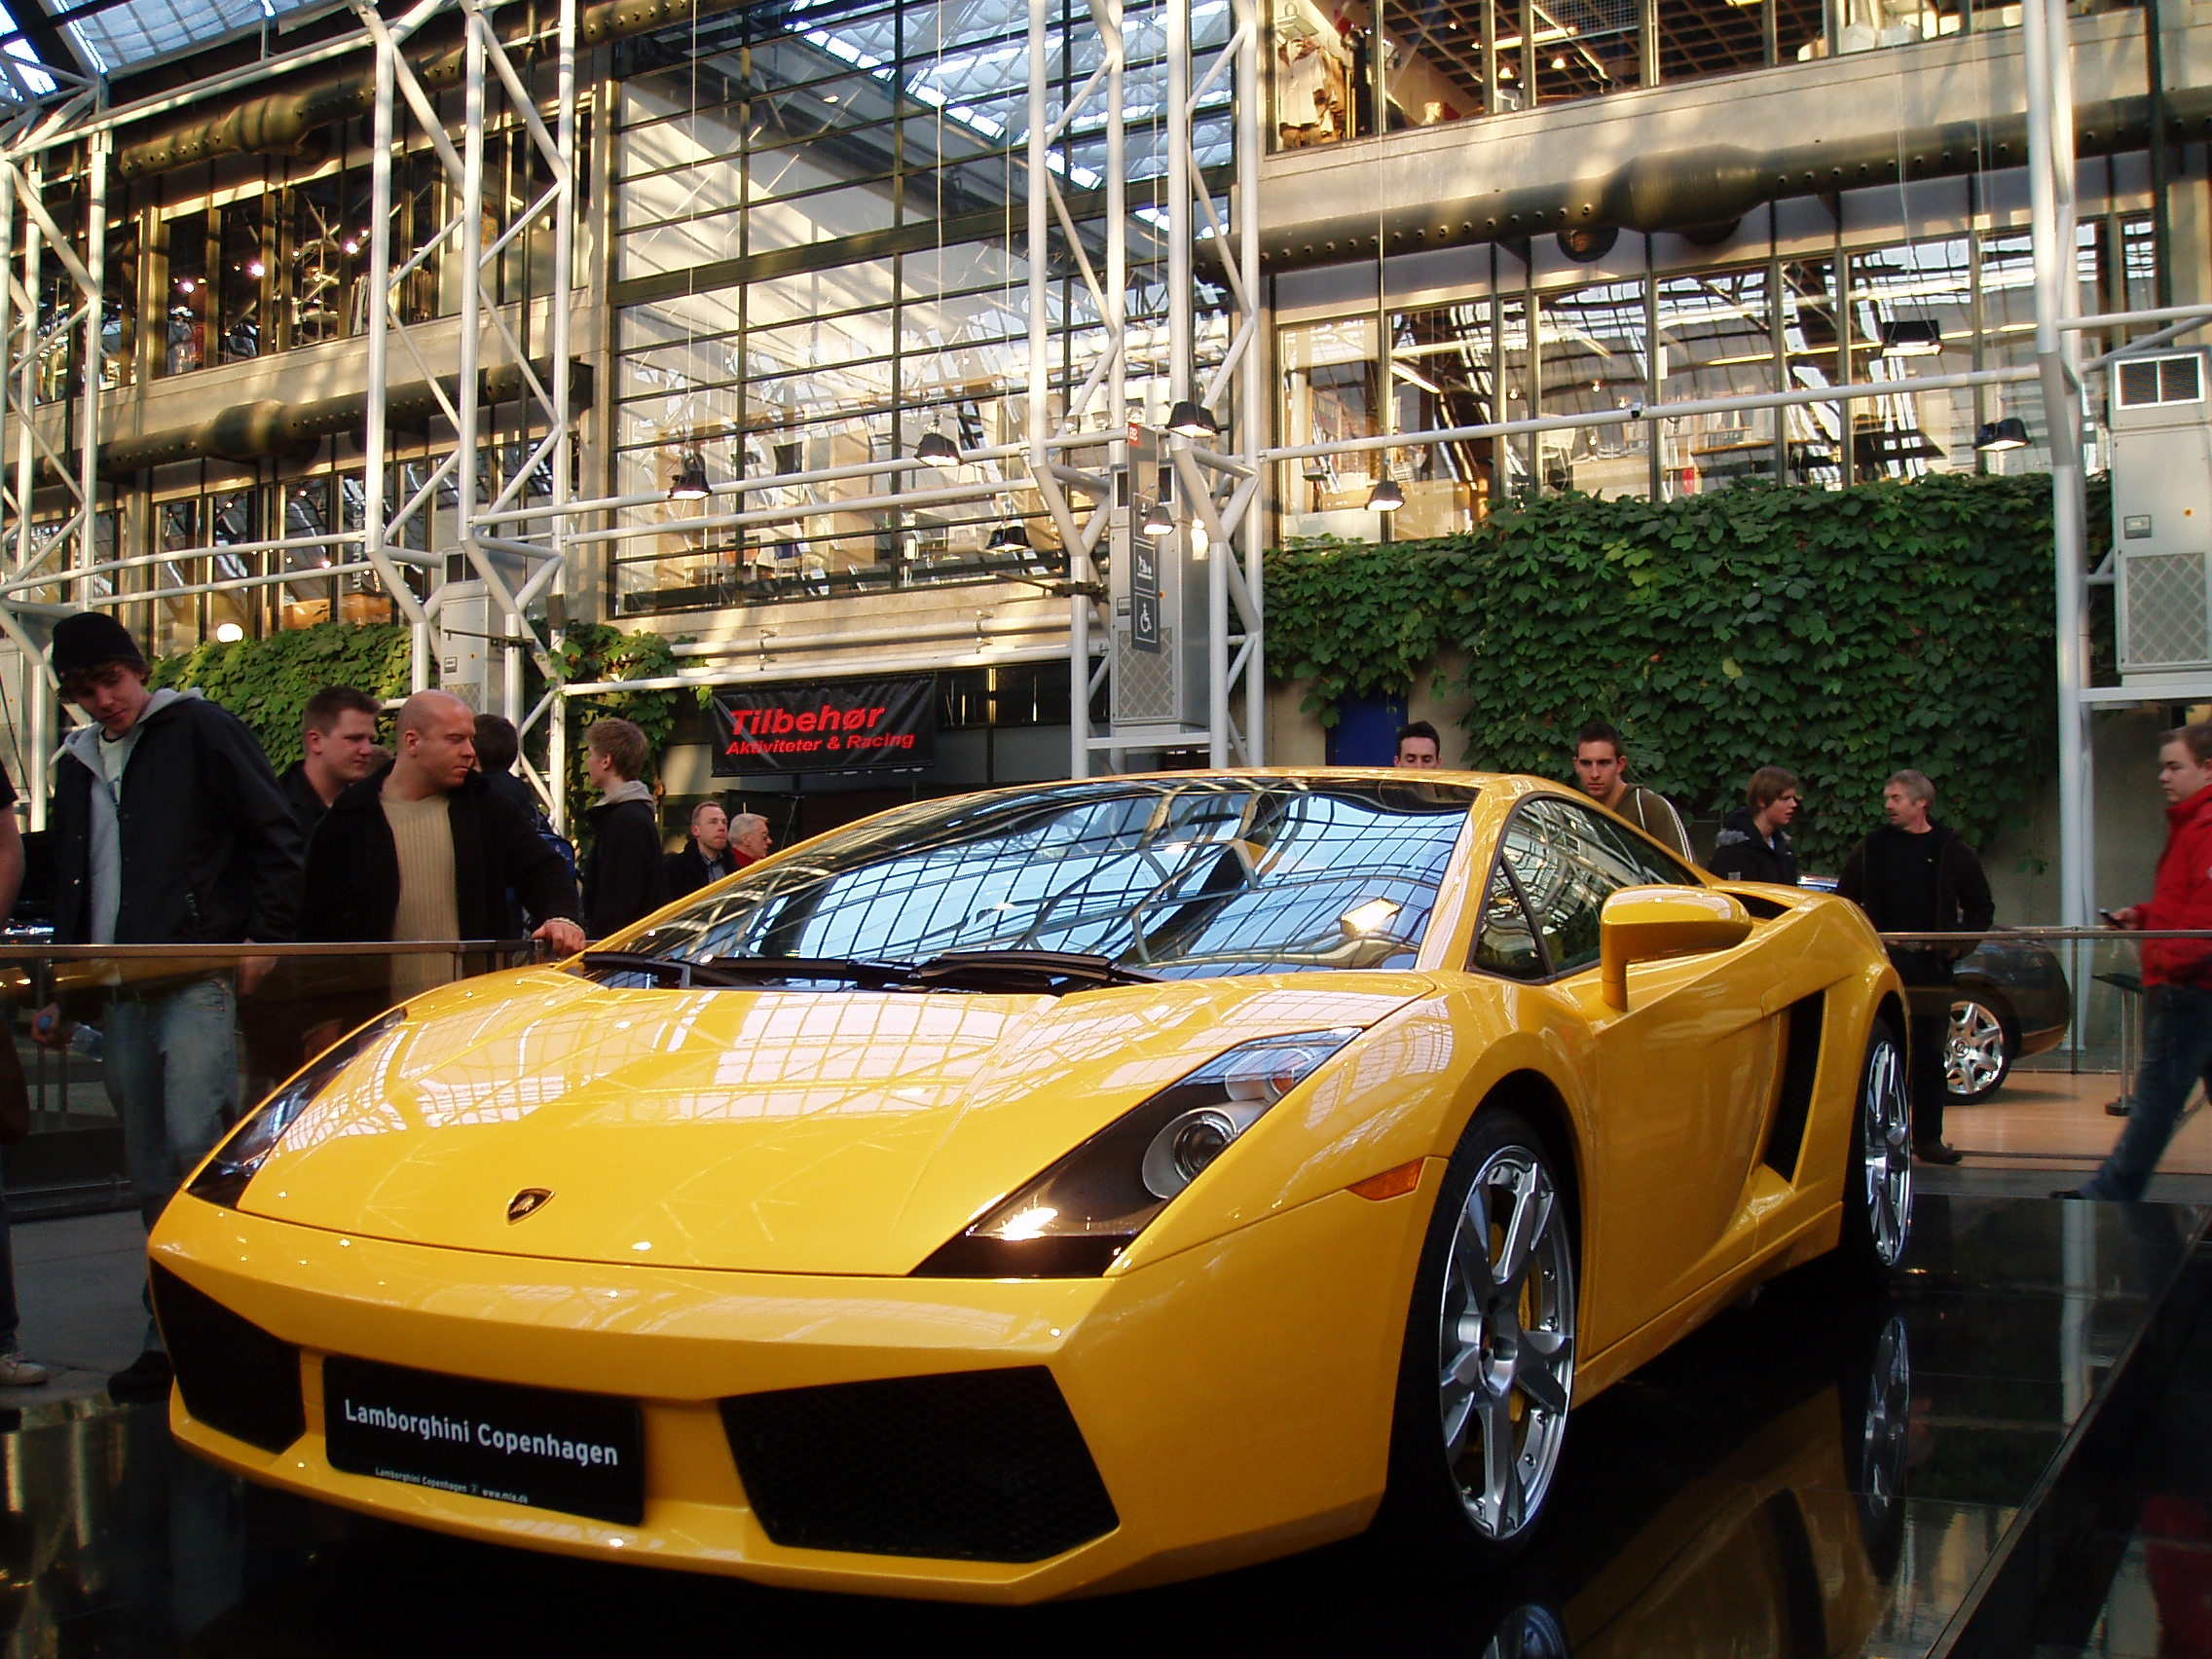 http://upload.wikimedia.org/wikipedia/commons/e/ed/Lamborghini_BC.jpg